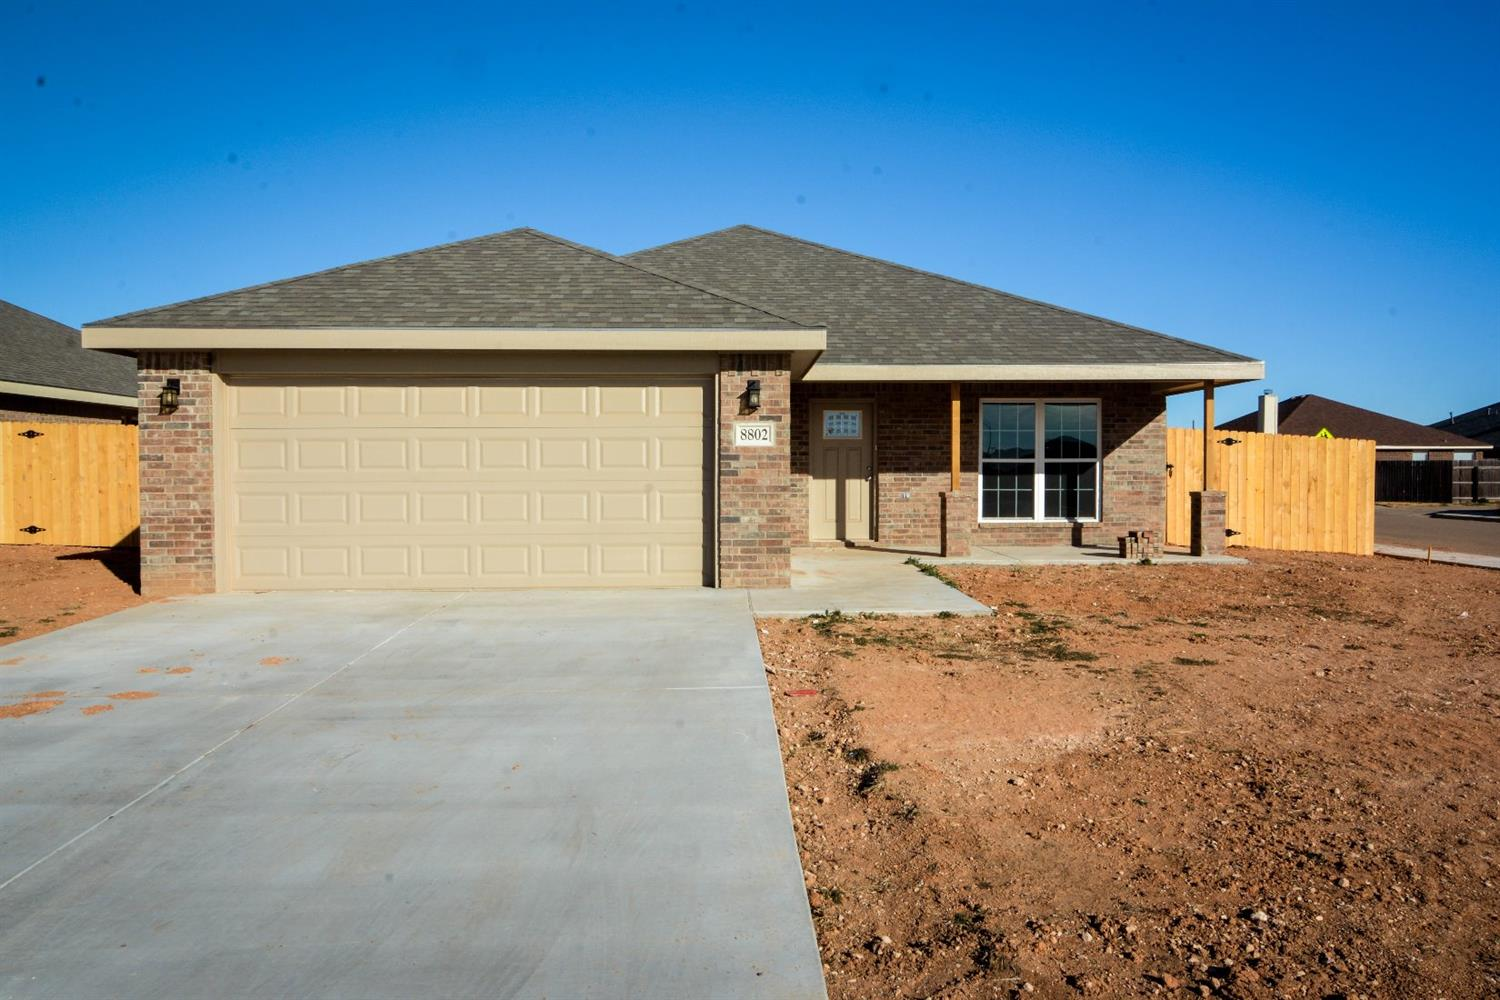 Great new construction 3 bed 2 bath 2 car garage deep soaker tub boxed ceilings granite kitchen stainless steel appliances.